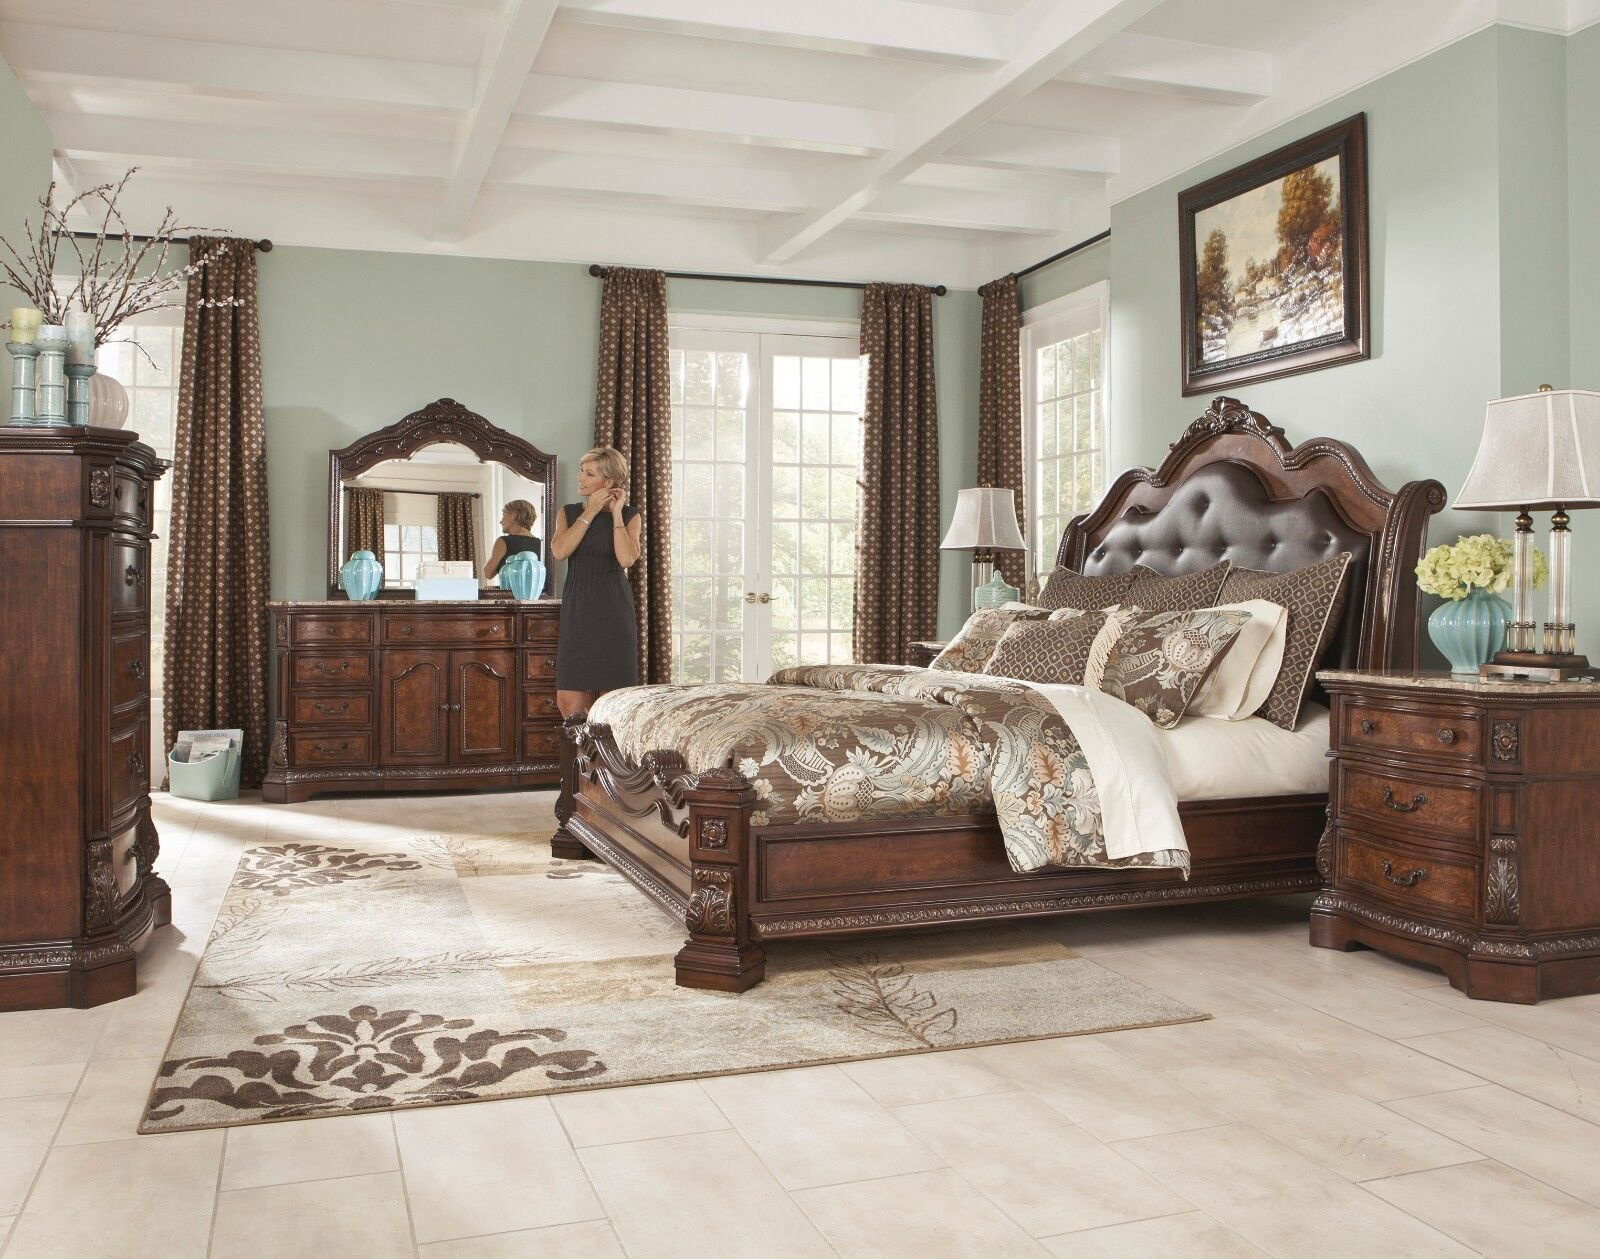 styles gallery bedroom design ideas furniture excellent sets ashley com with interior home ashleyfurniture on porter